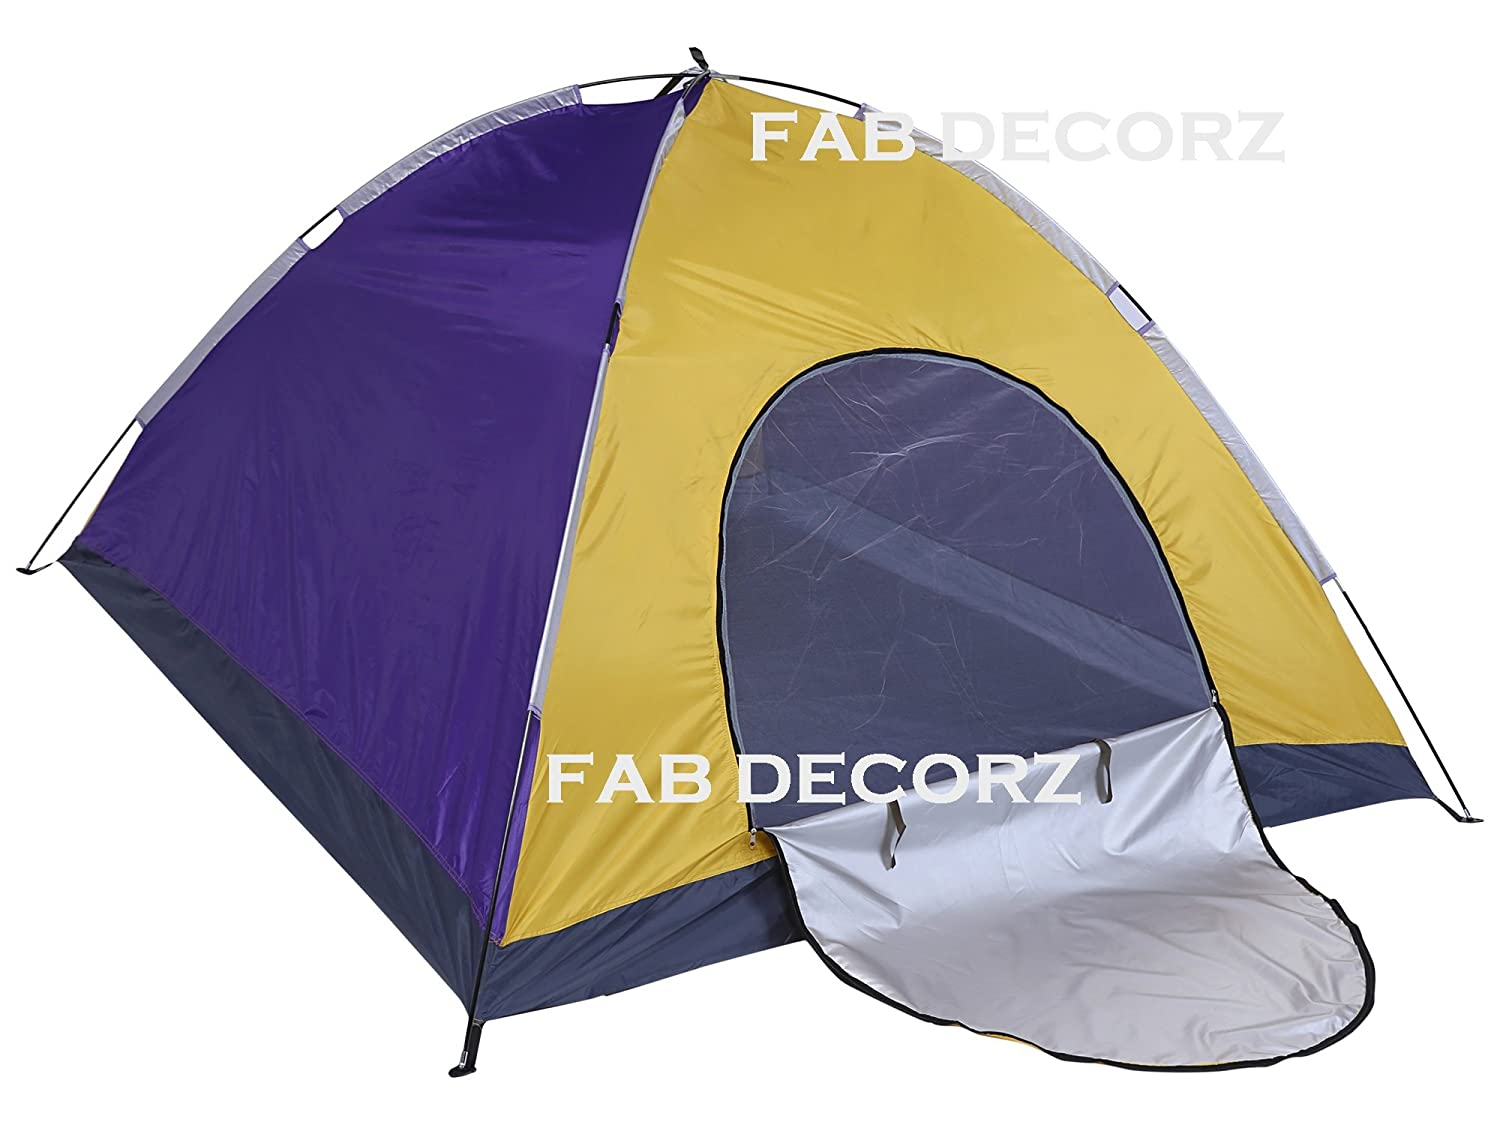 Uniquecartz 8 Person Tent for Outdoors C&ing u0026 Hiking Amazon.in Sports Fitness u0026 Outdoors  sc 1 st  Amazon.in & Uniquecartz 8 Person Tent for Outdoors Camping u0026 Hiking: Amazon.in ...